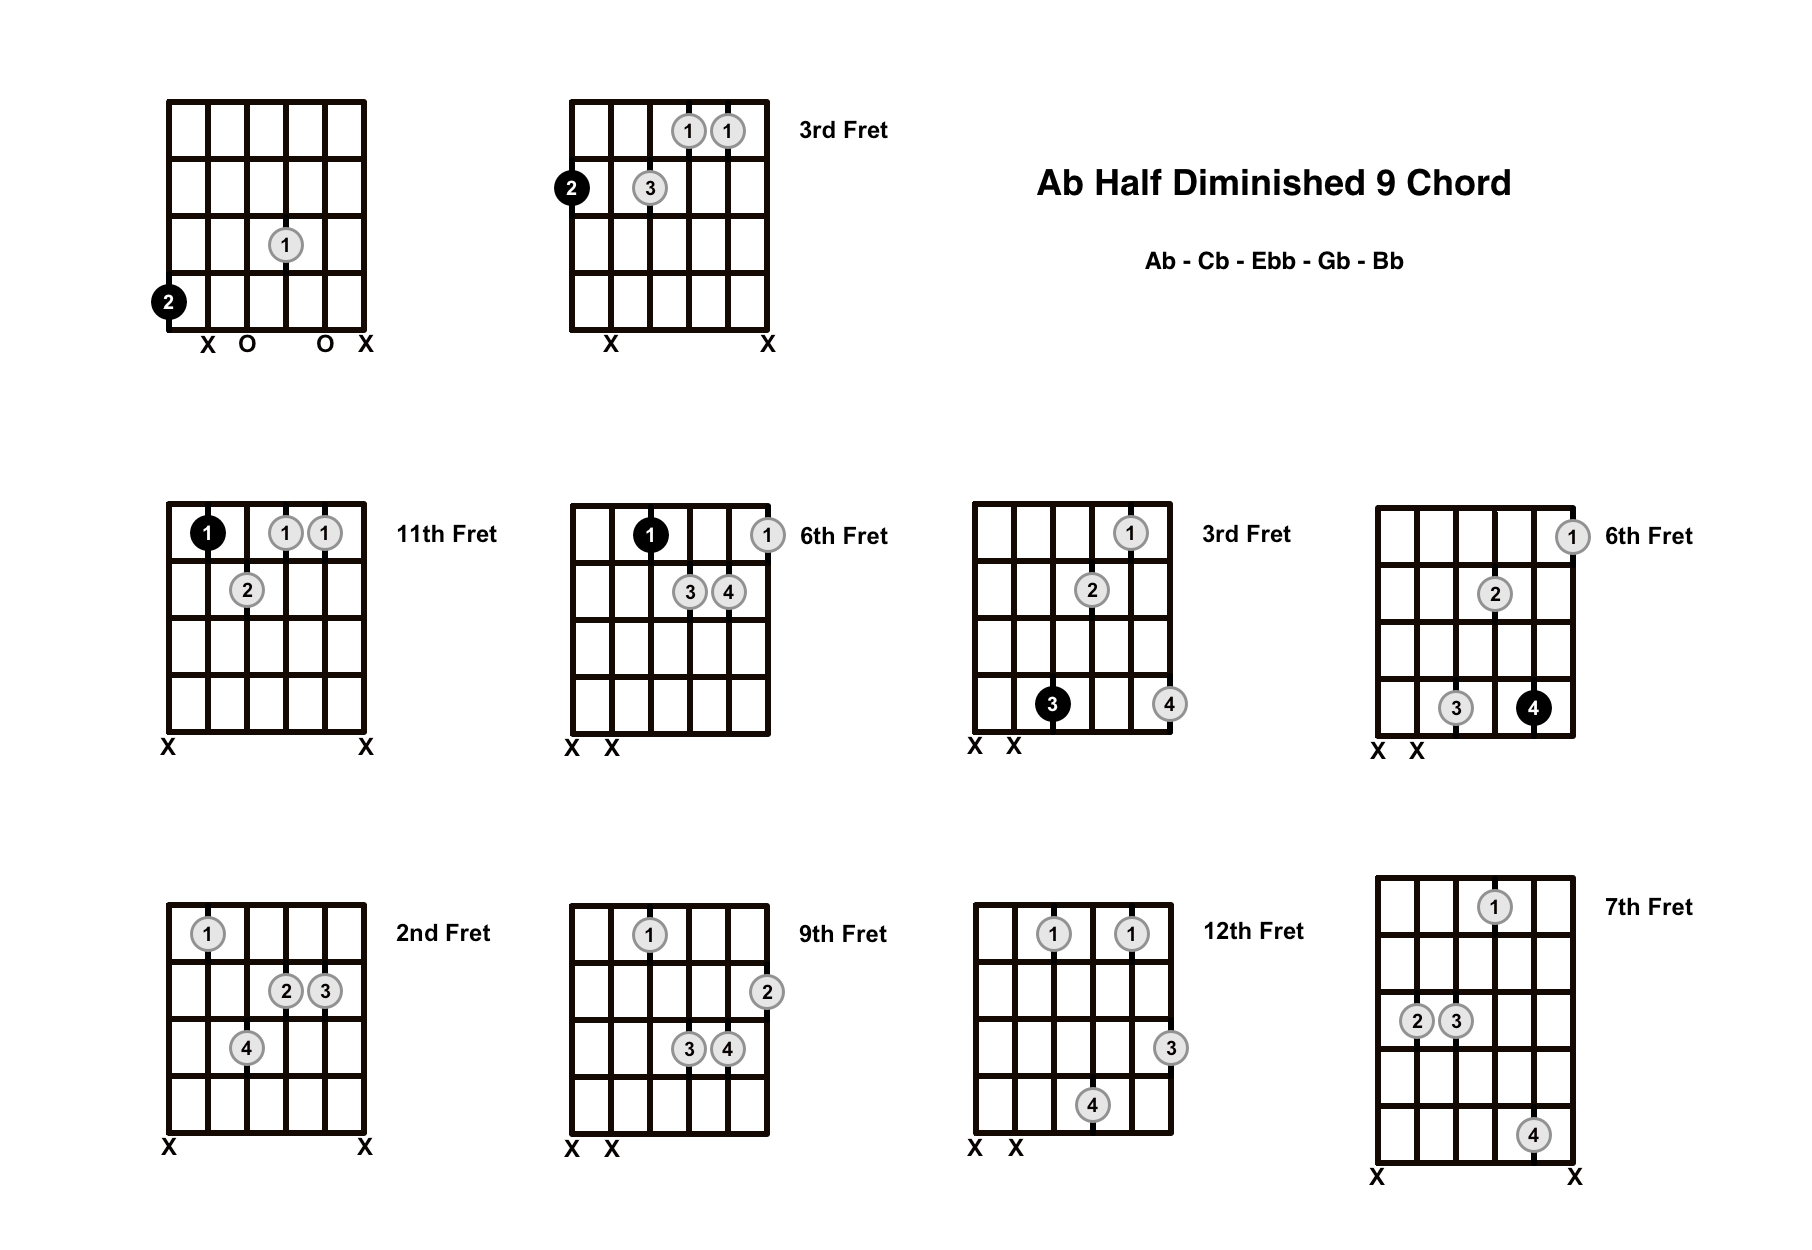 Abm9b5 Chord On The Guitar (A Flat Half Diminished 9) – Diagrams, Finger Positions and Theory